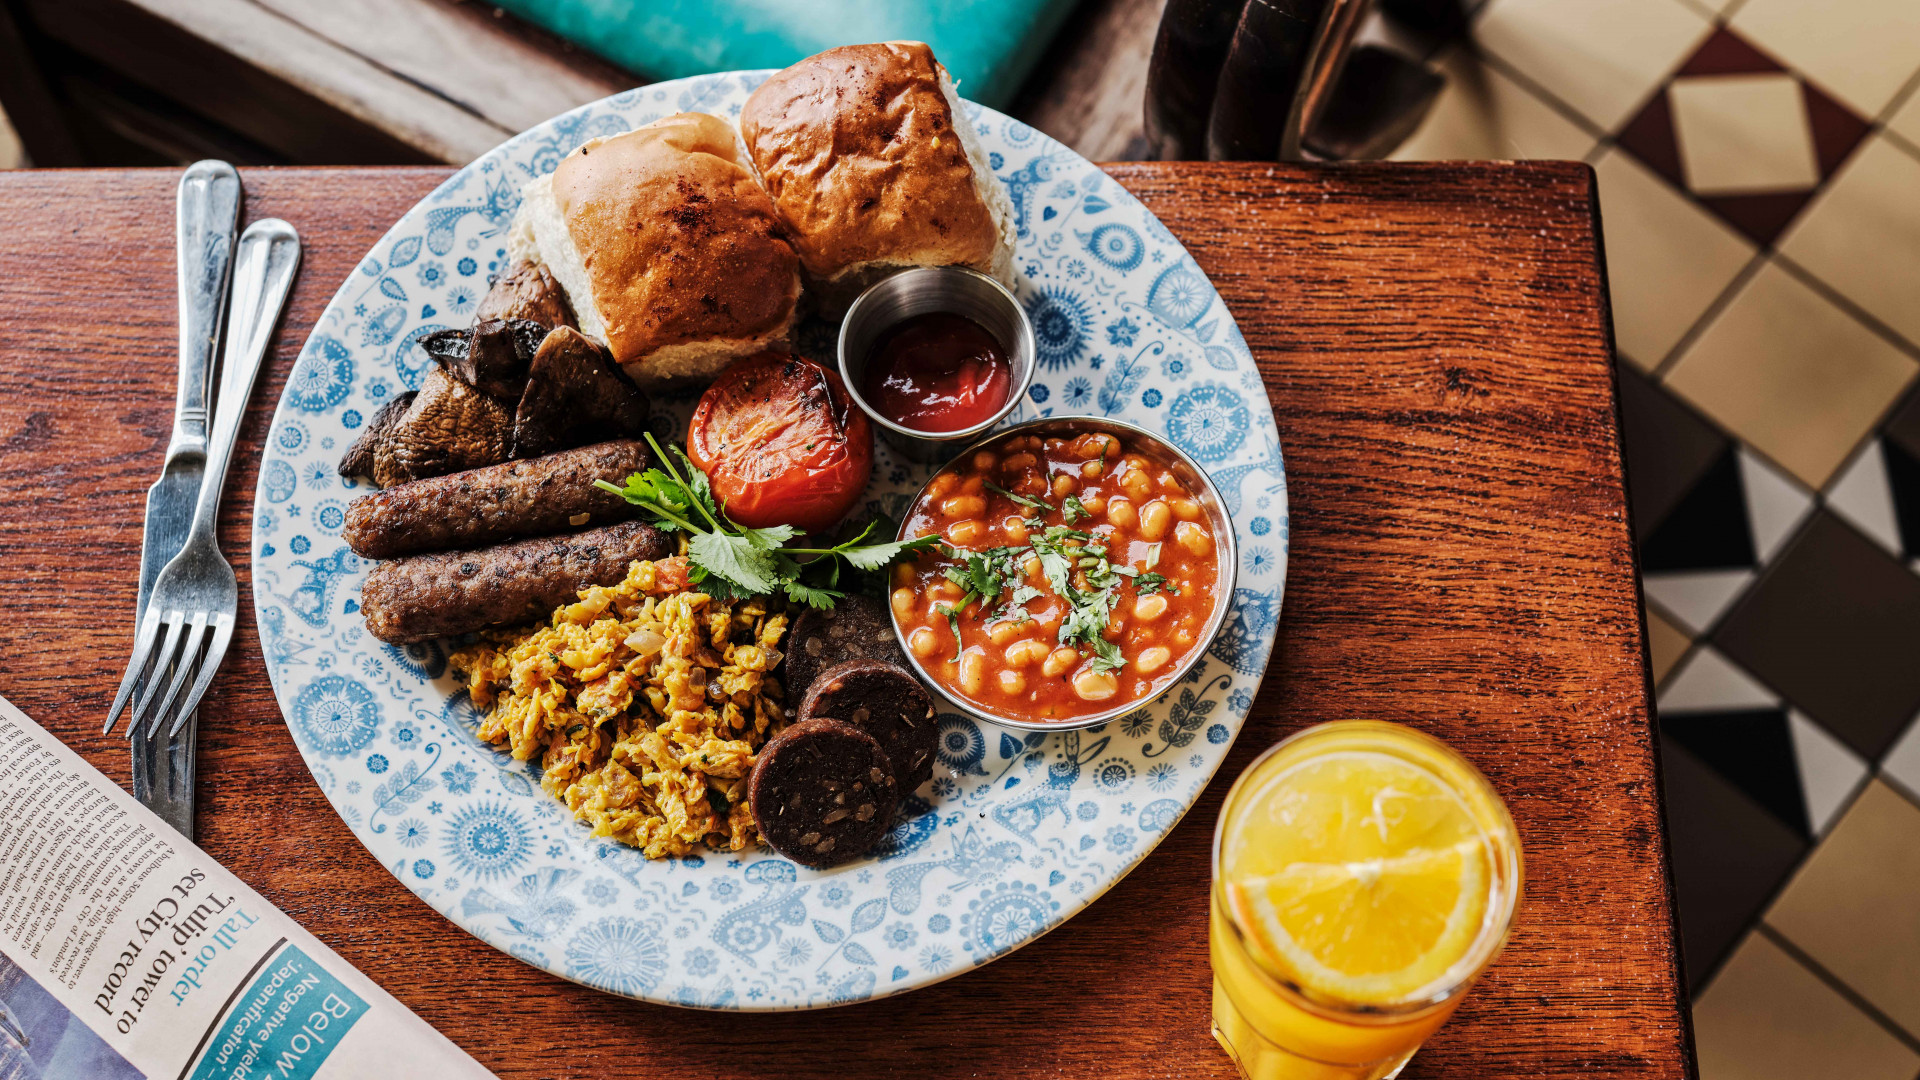 Vegan bombay breakfast at Dishoom